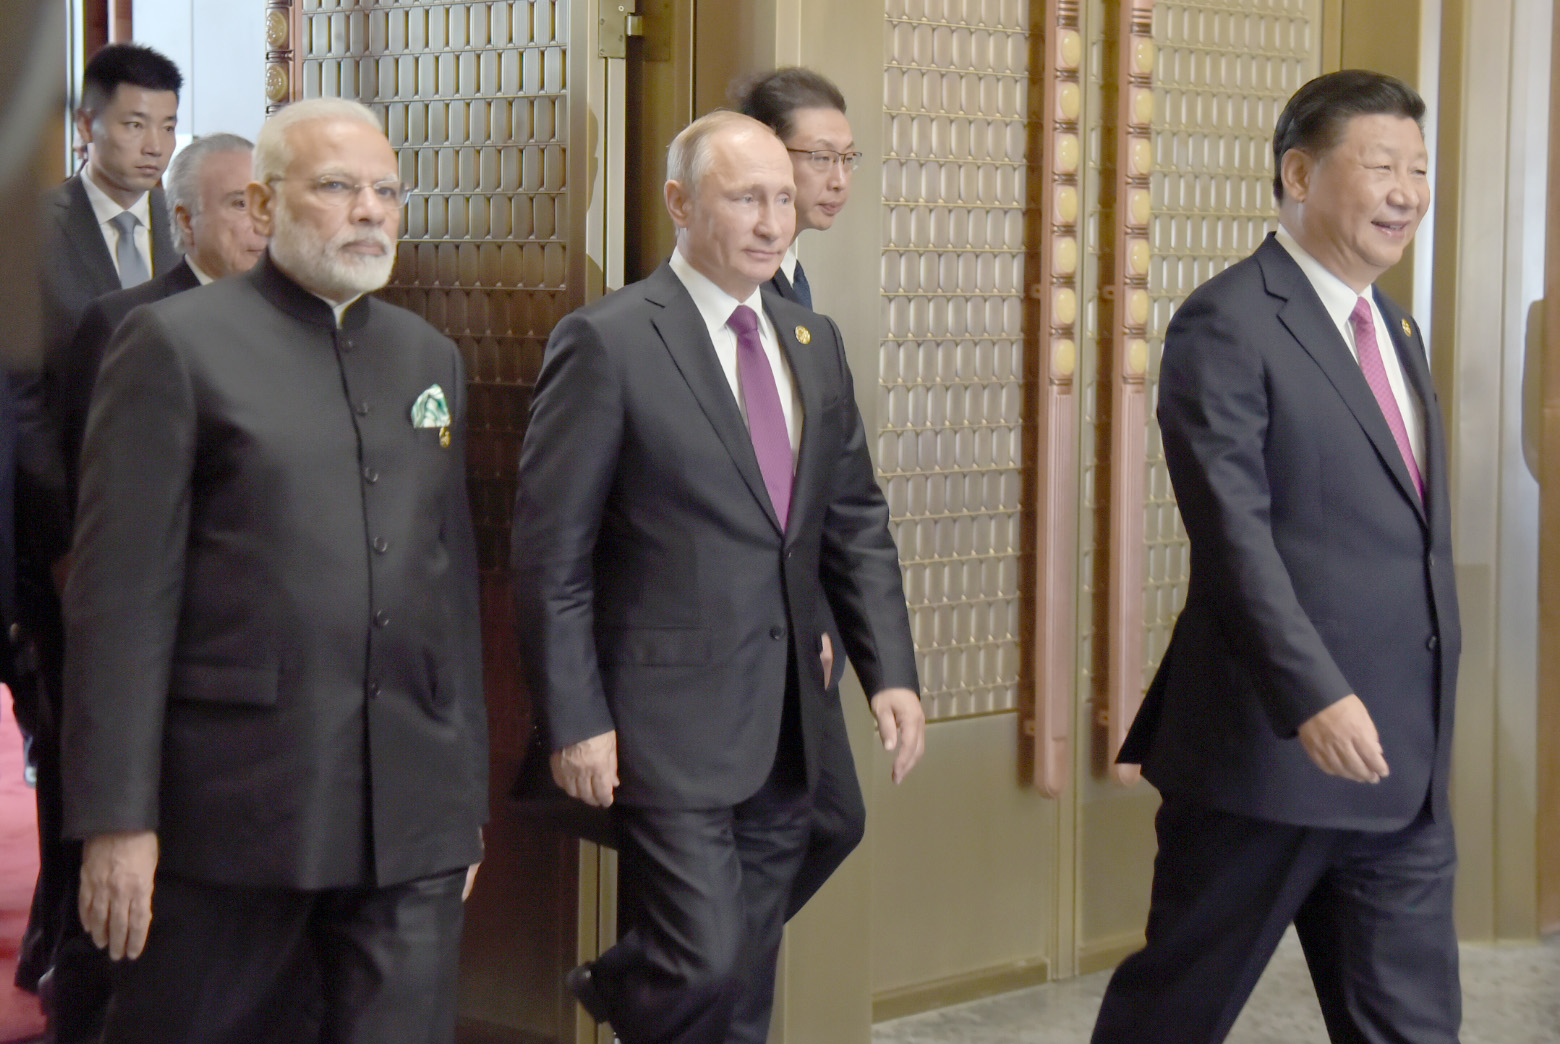 Indian Prime Minister Narendra Modi (left) with Russian President Vladimir Putin (centre) and Chinese Premier Xi Jinping at the BRICS summit. Photos courtesy: Press Information Bureau, India